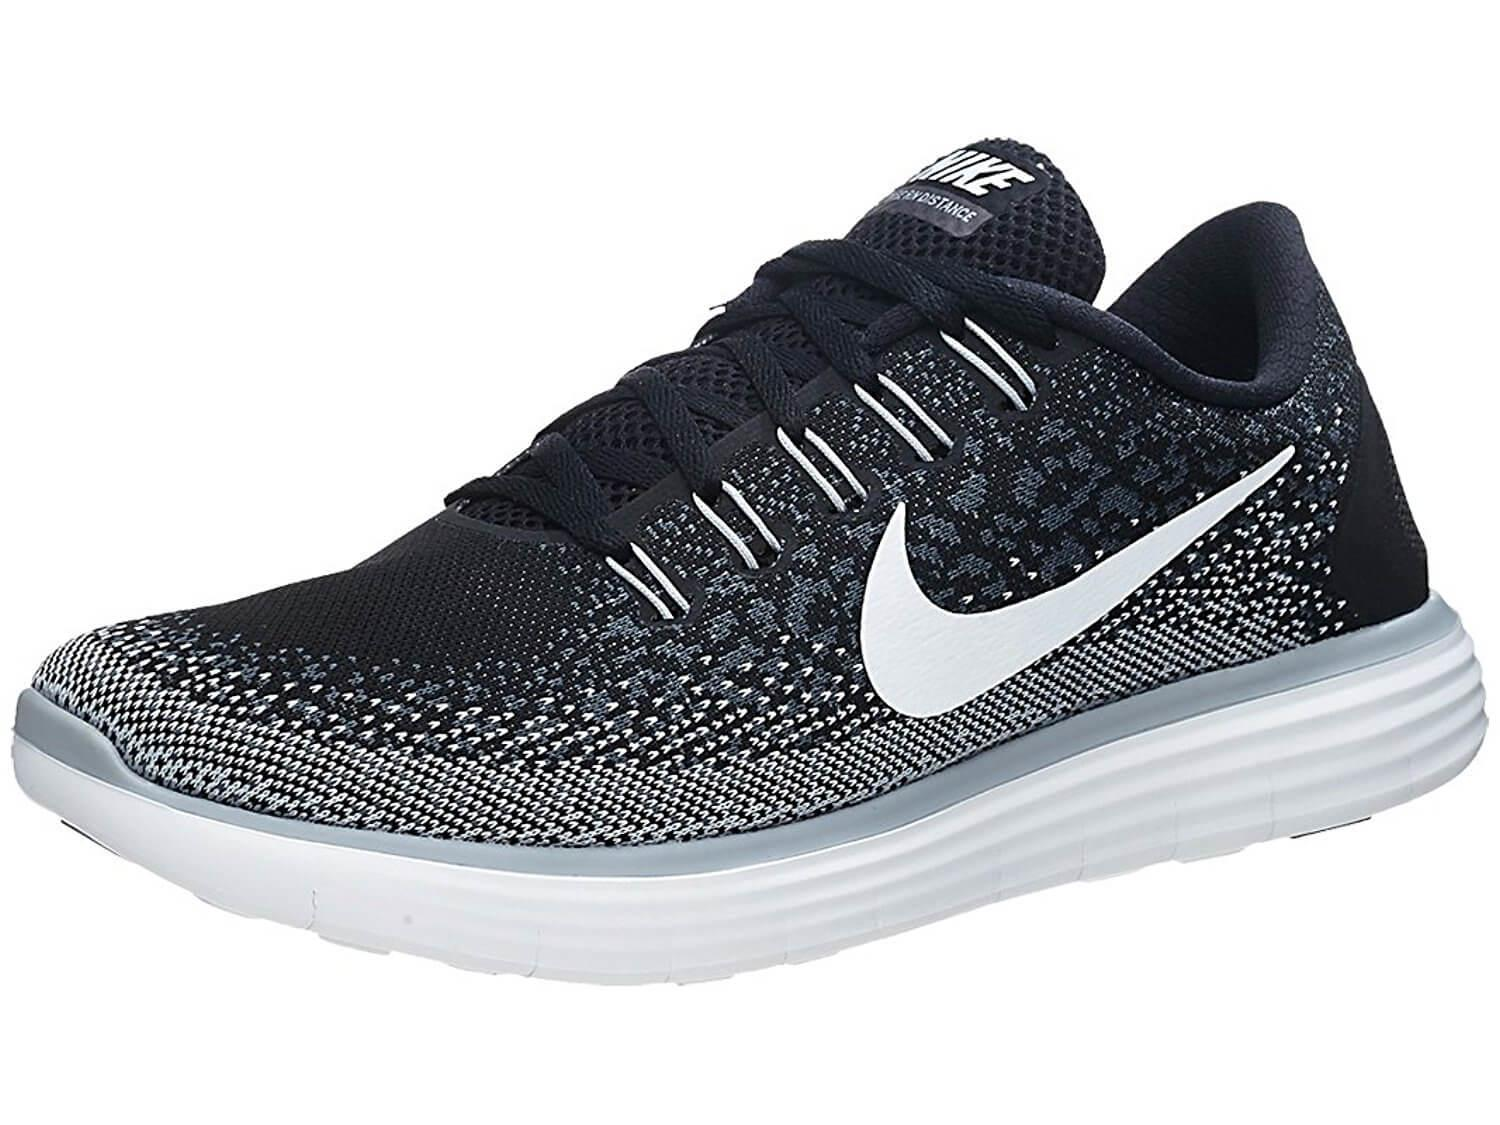 4beb4569f7af The Nike Free RN Distance is an excellent all-around running shoe.